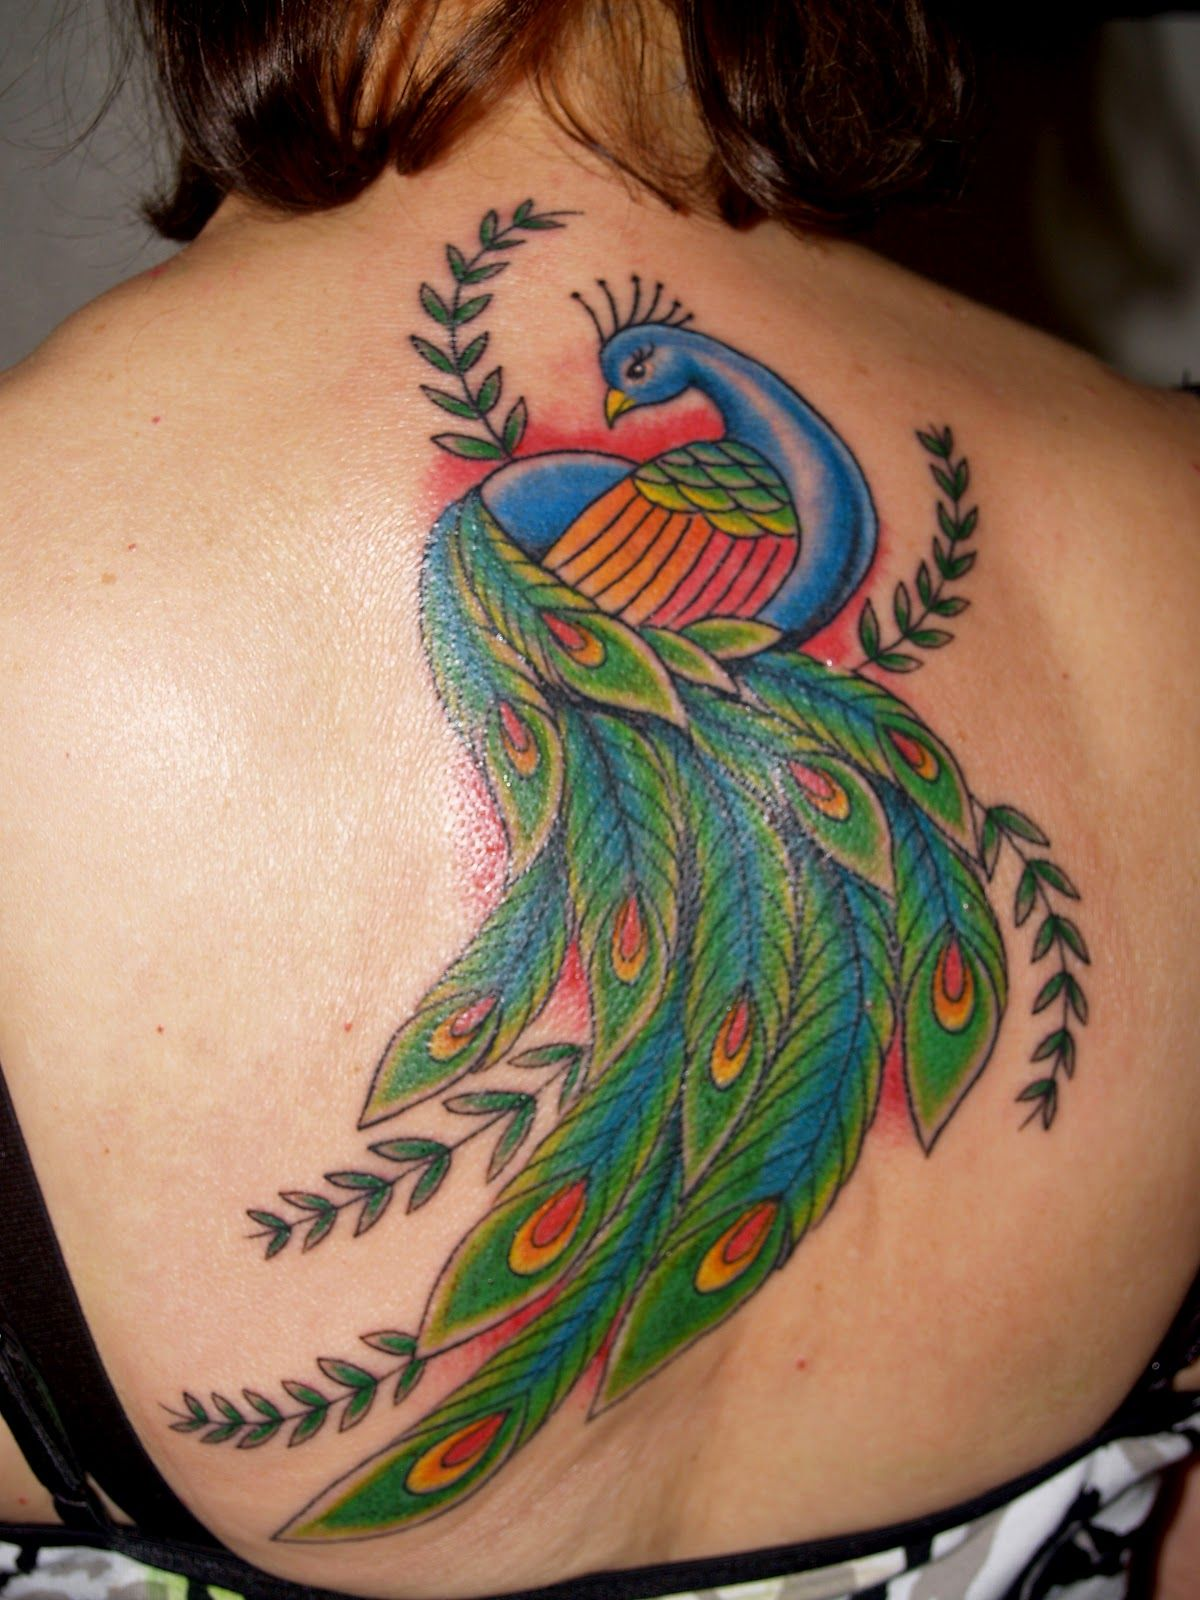 Henna Peacock Tattoo Lower Back: Peacock Feather Tattoos Designs